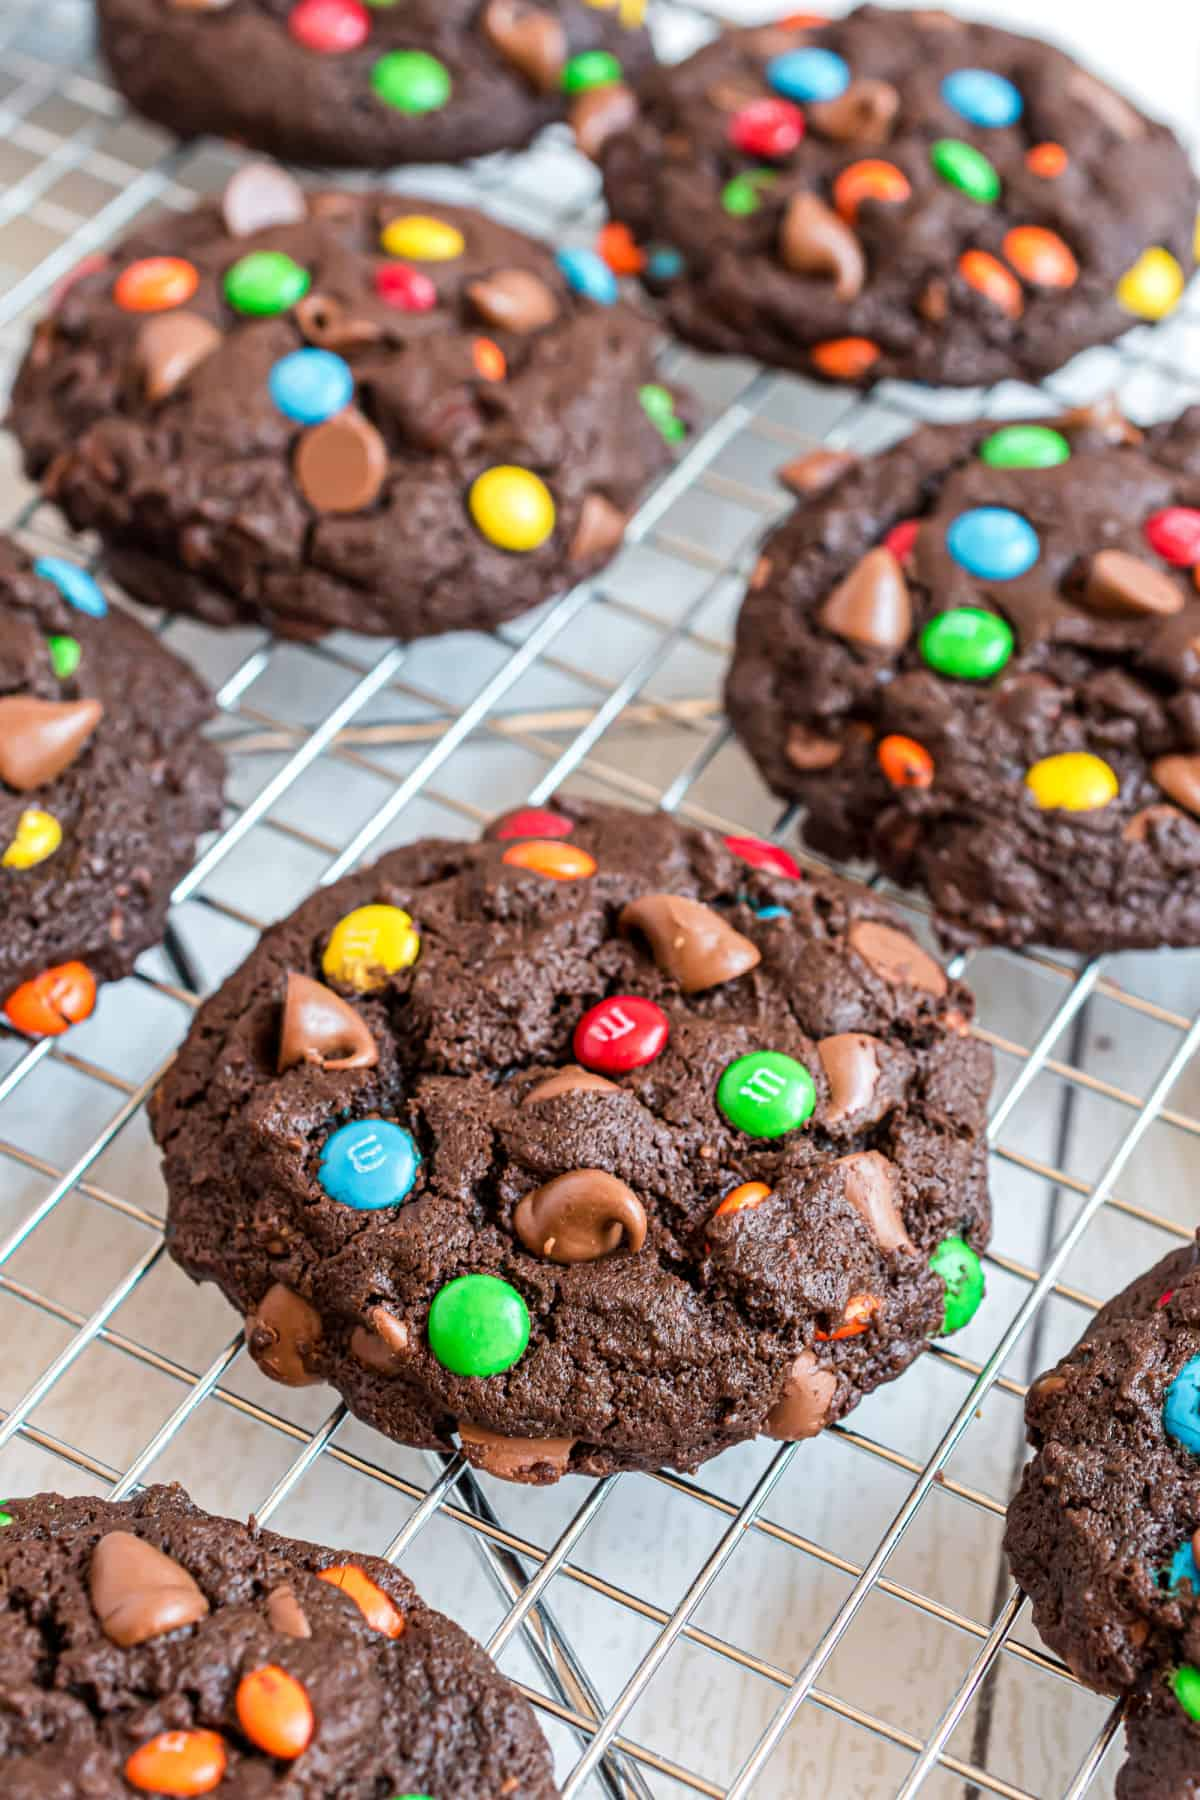 Chocolate cookies with m&m's on a wire cooling rack.